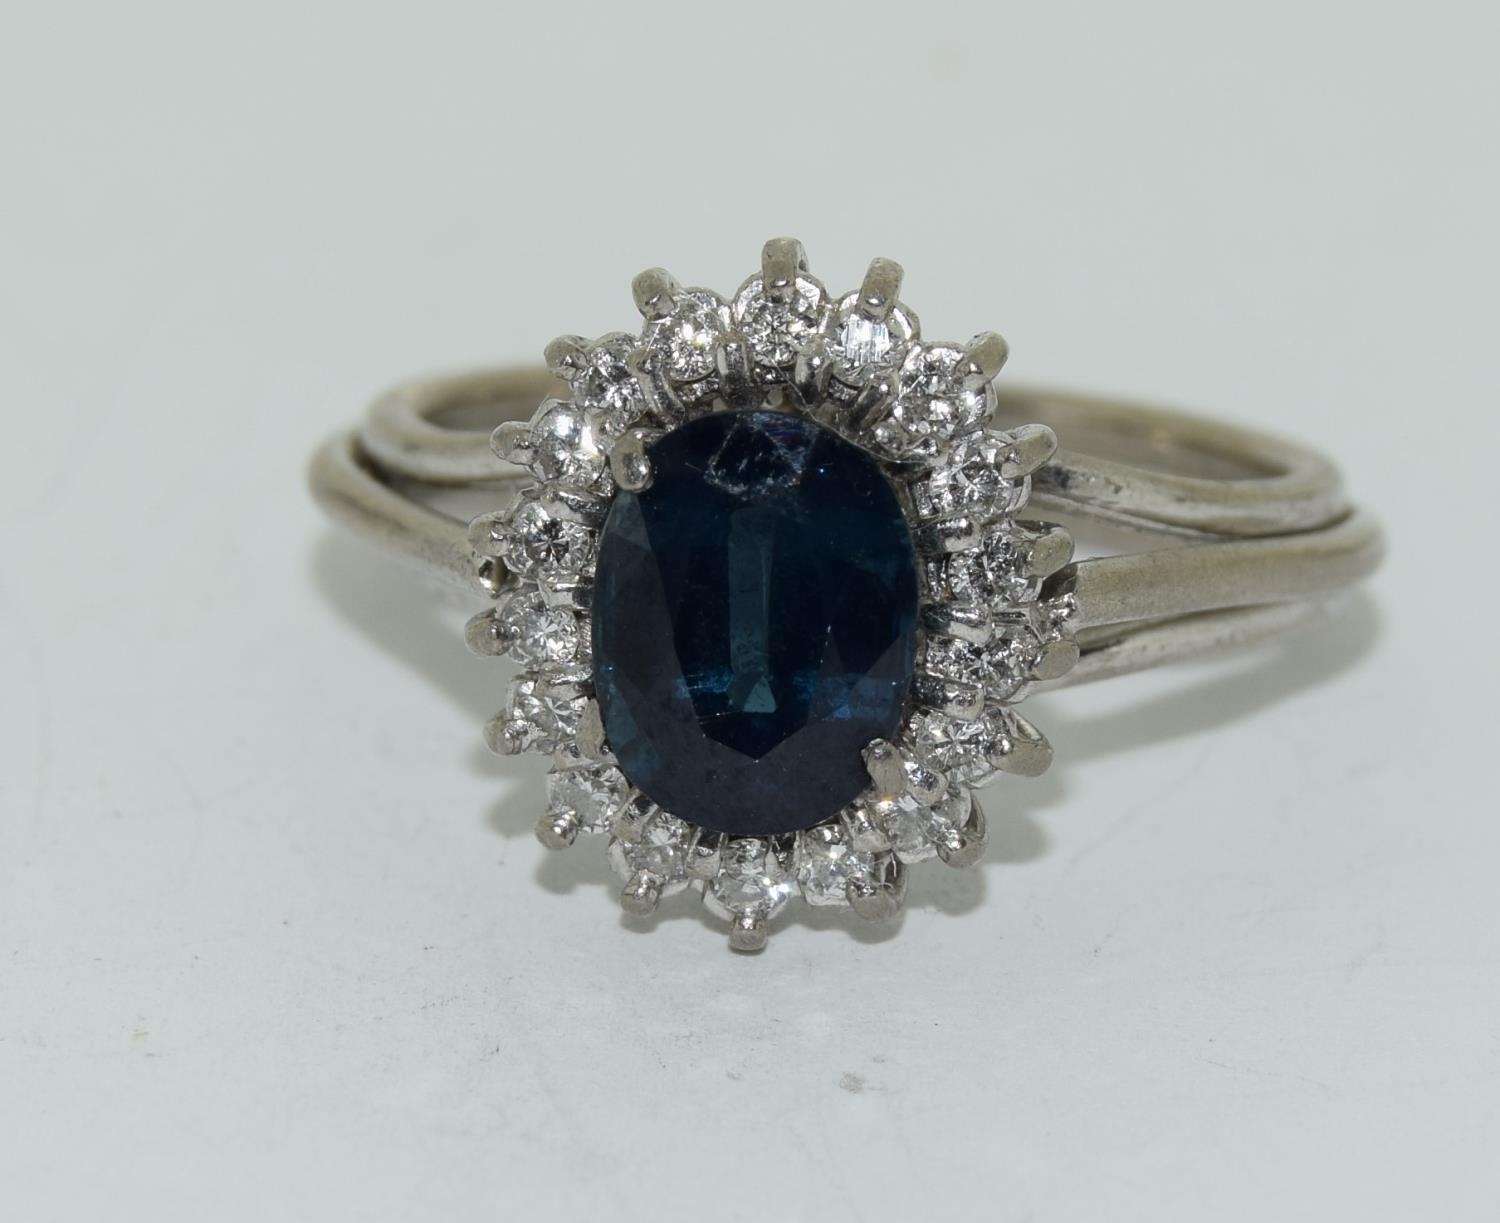 An 18ct white gold ladies diamond and sapphire ring, Size L - Image 6 of 6